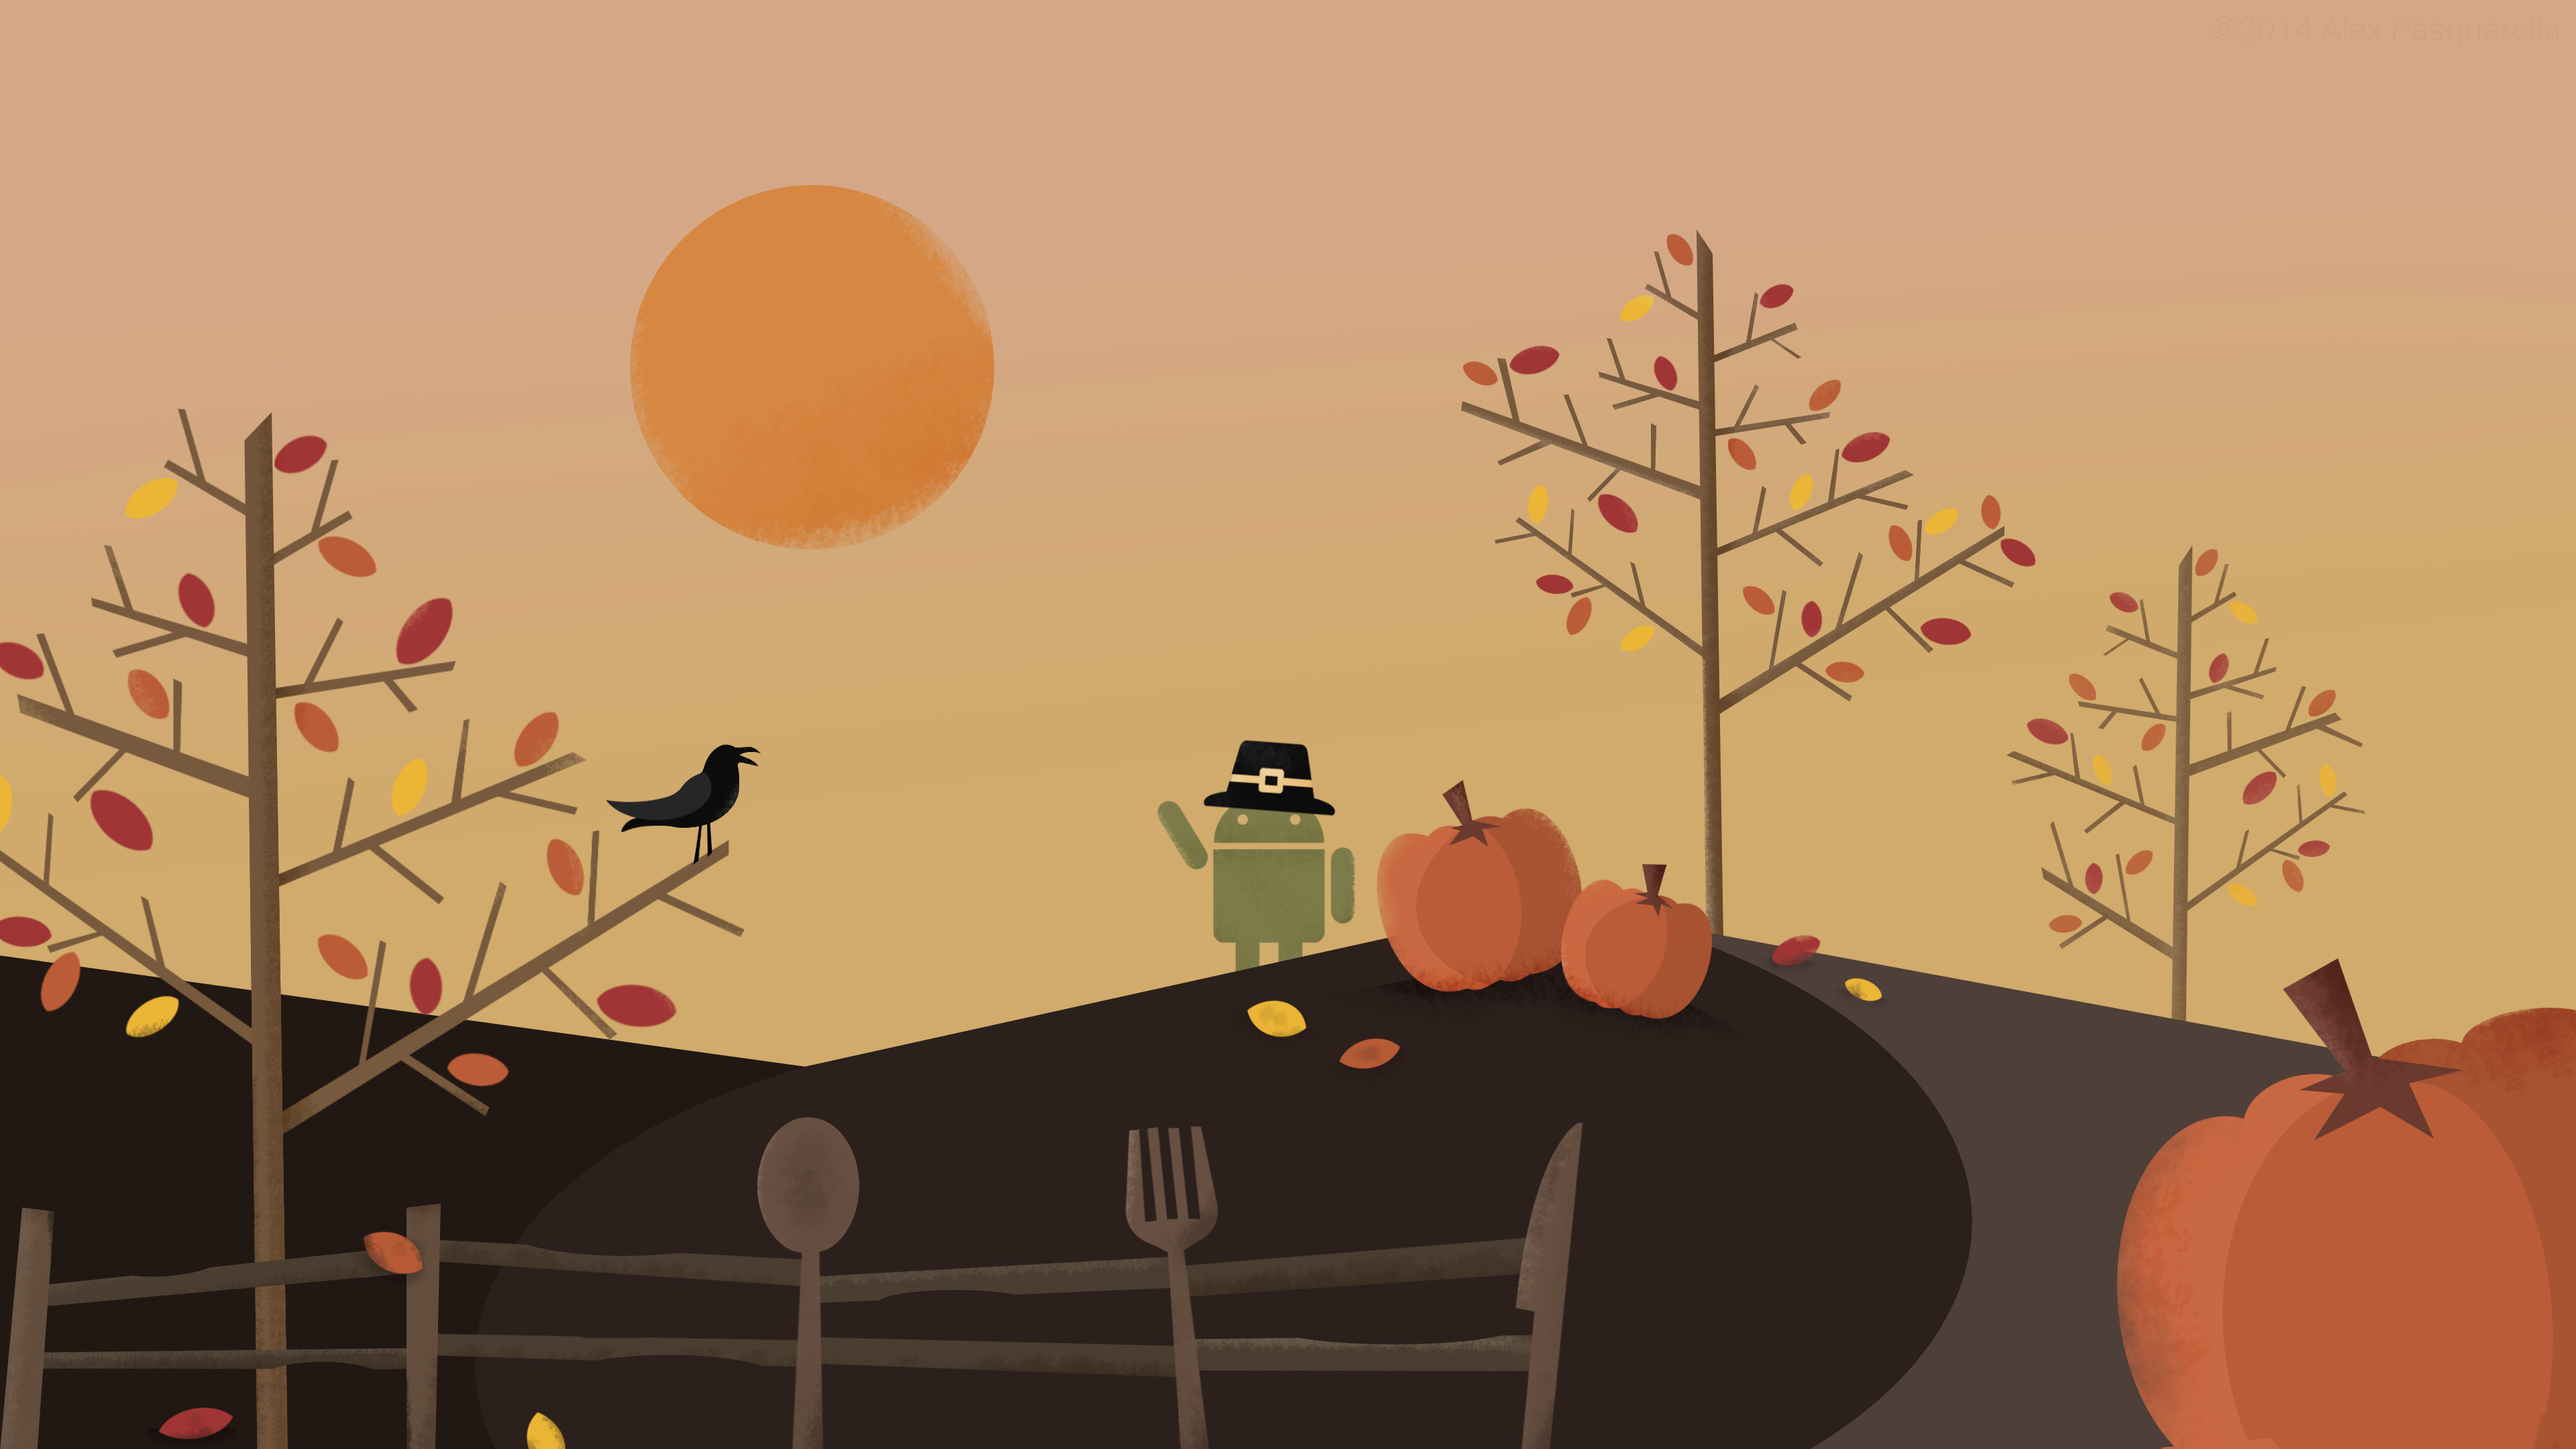 Res: 3840x2160, Thanksgiving Wallpapers HD For Desktop Top Thanksgiving HD HQ